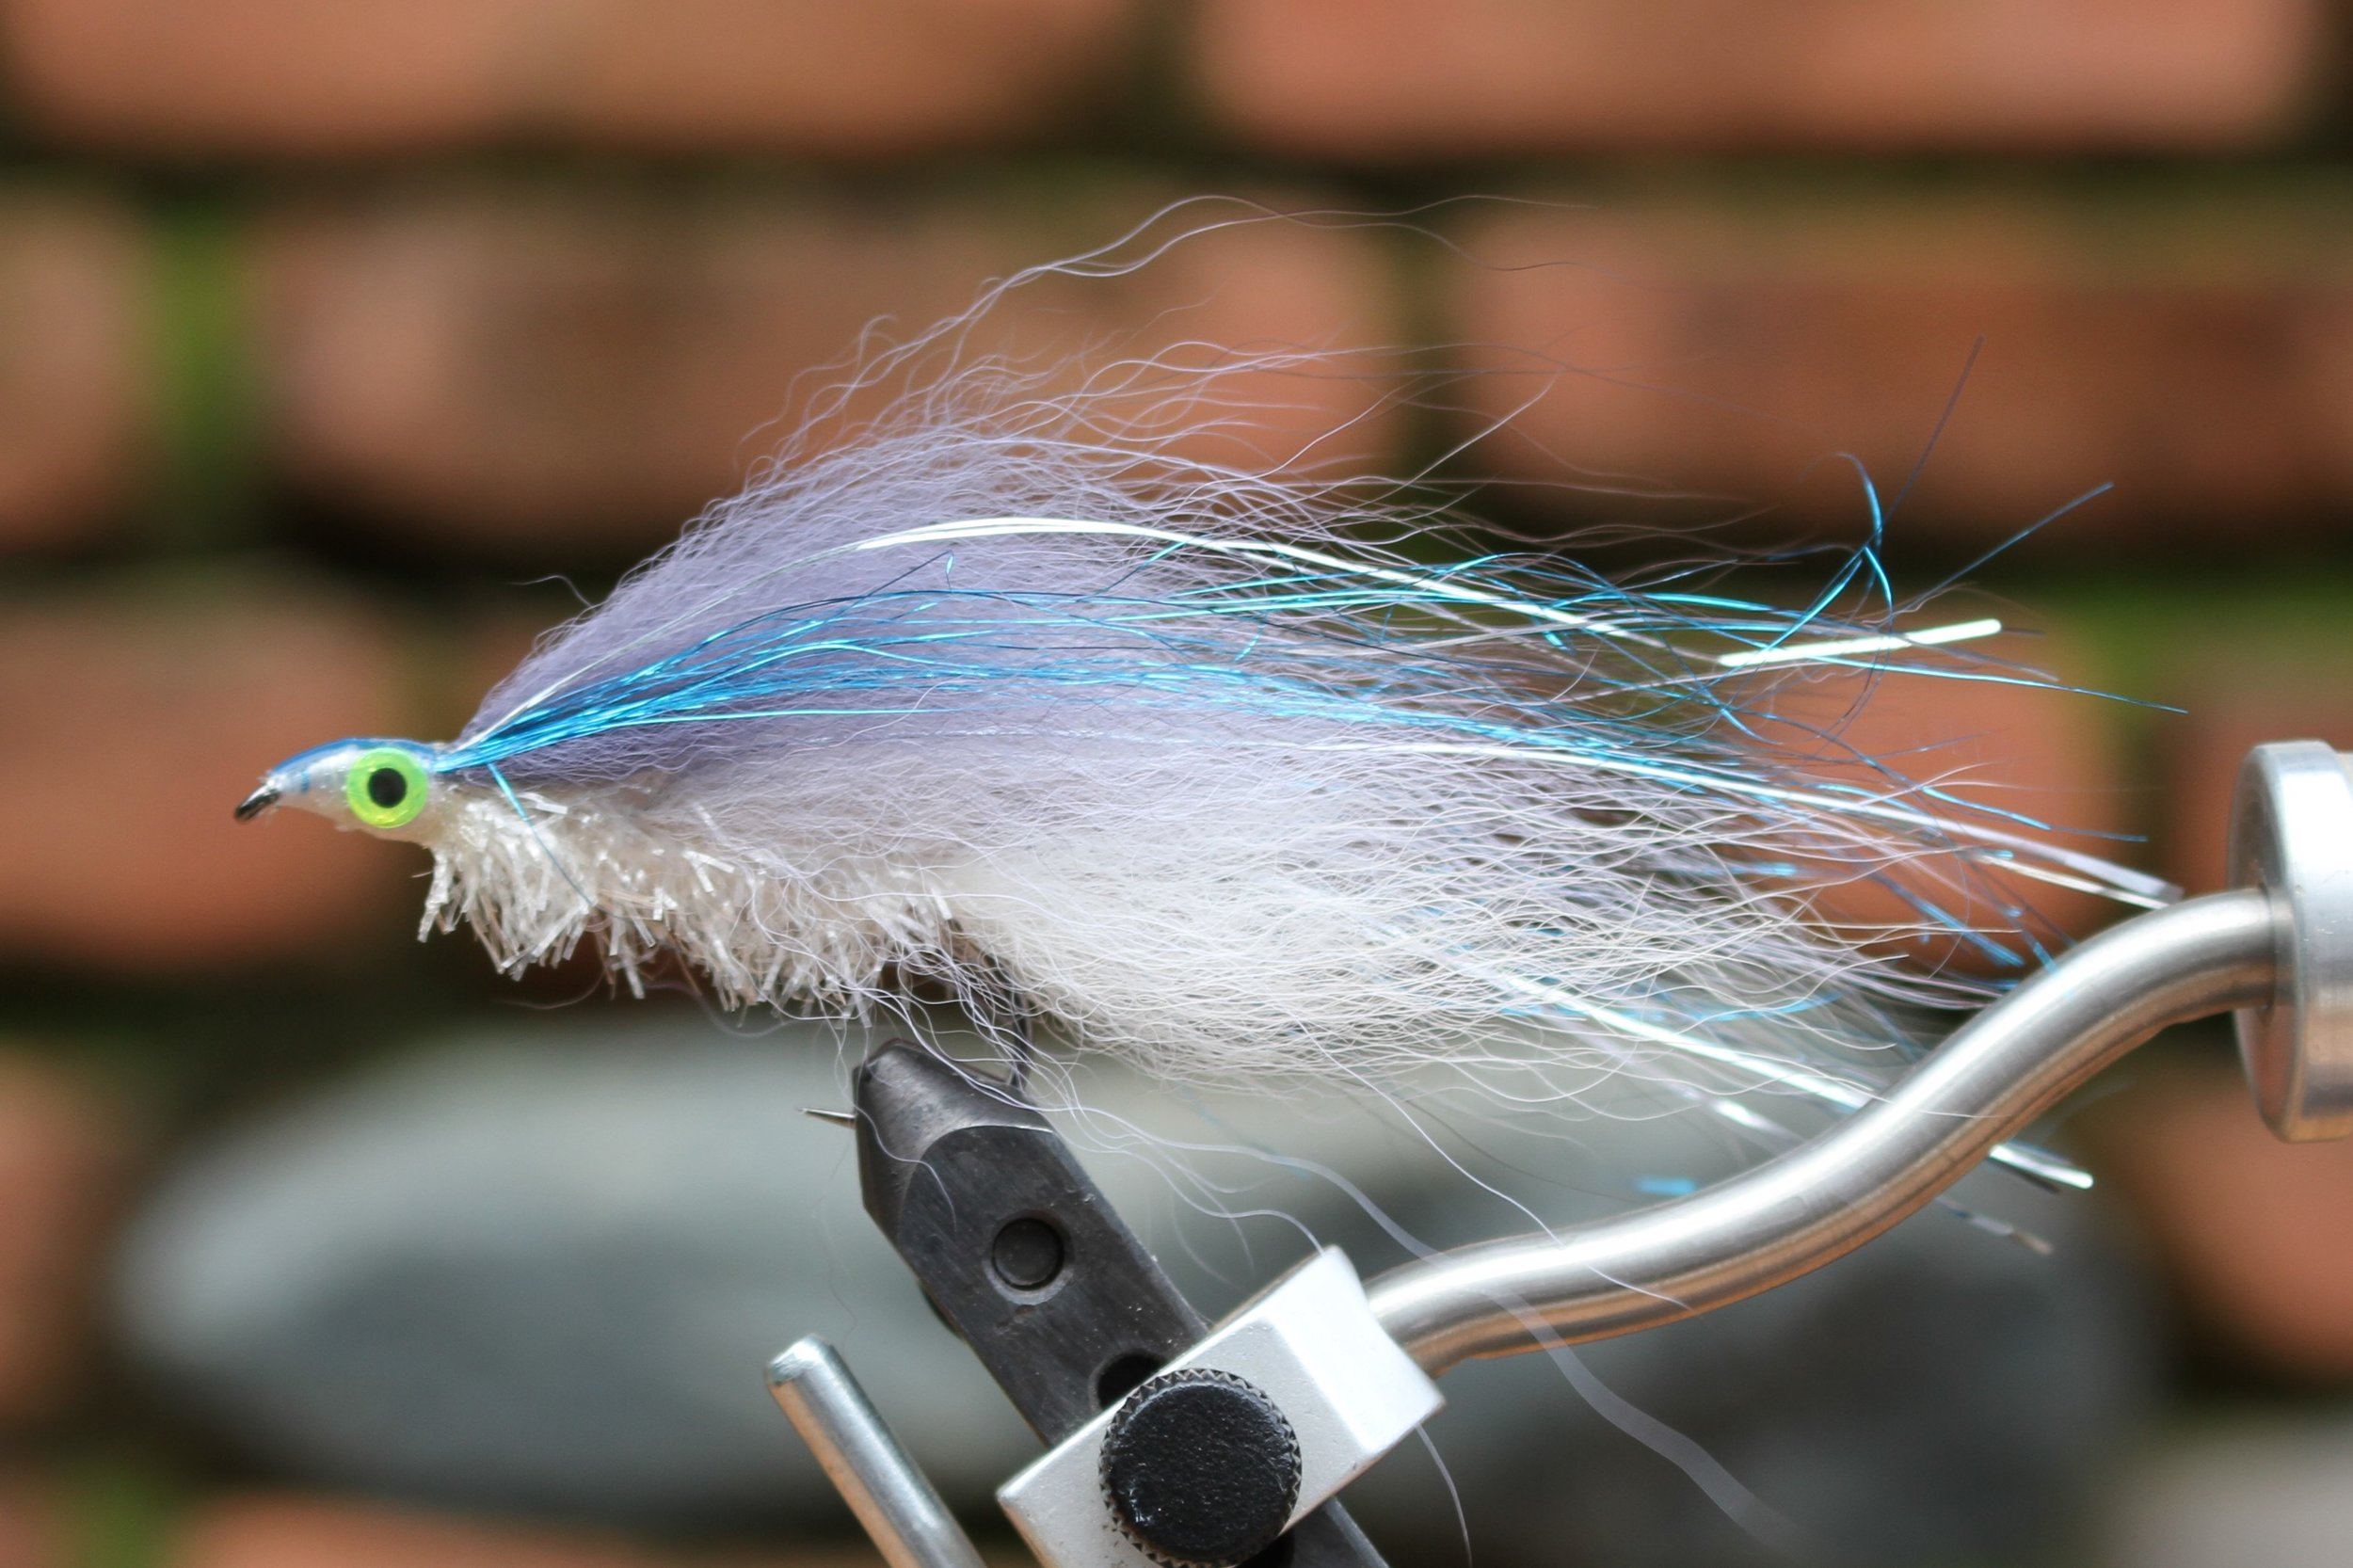 BLUE Shad, #2 Arctic Fox Trolling Fly. This is the most requested color by my Great Lakes customers. The blue-gray fur has royal blue mylar as an over lay. The flash on the side is silver. A classic combination.